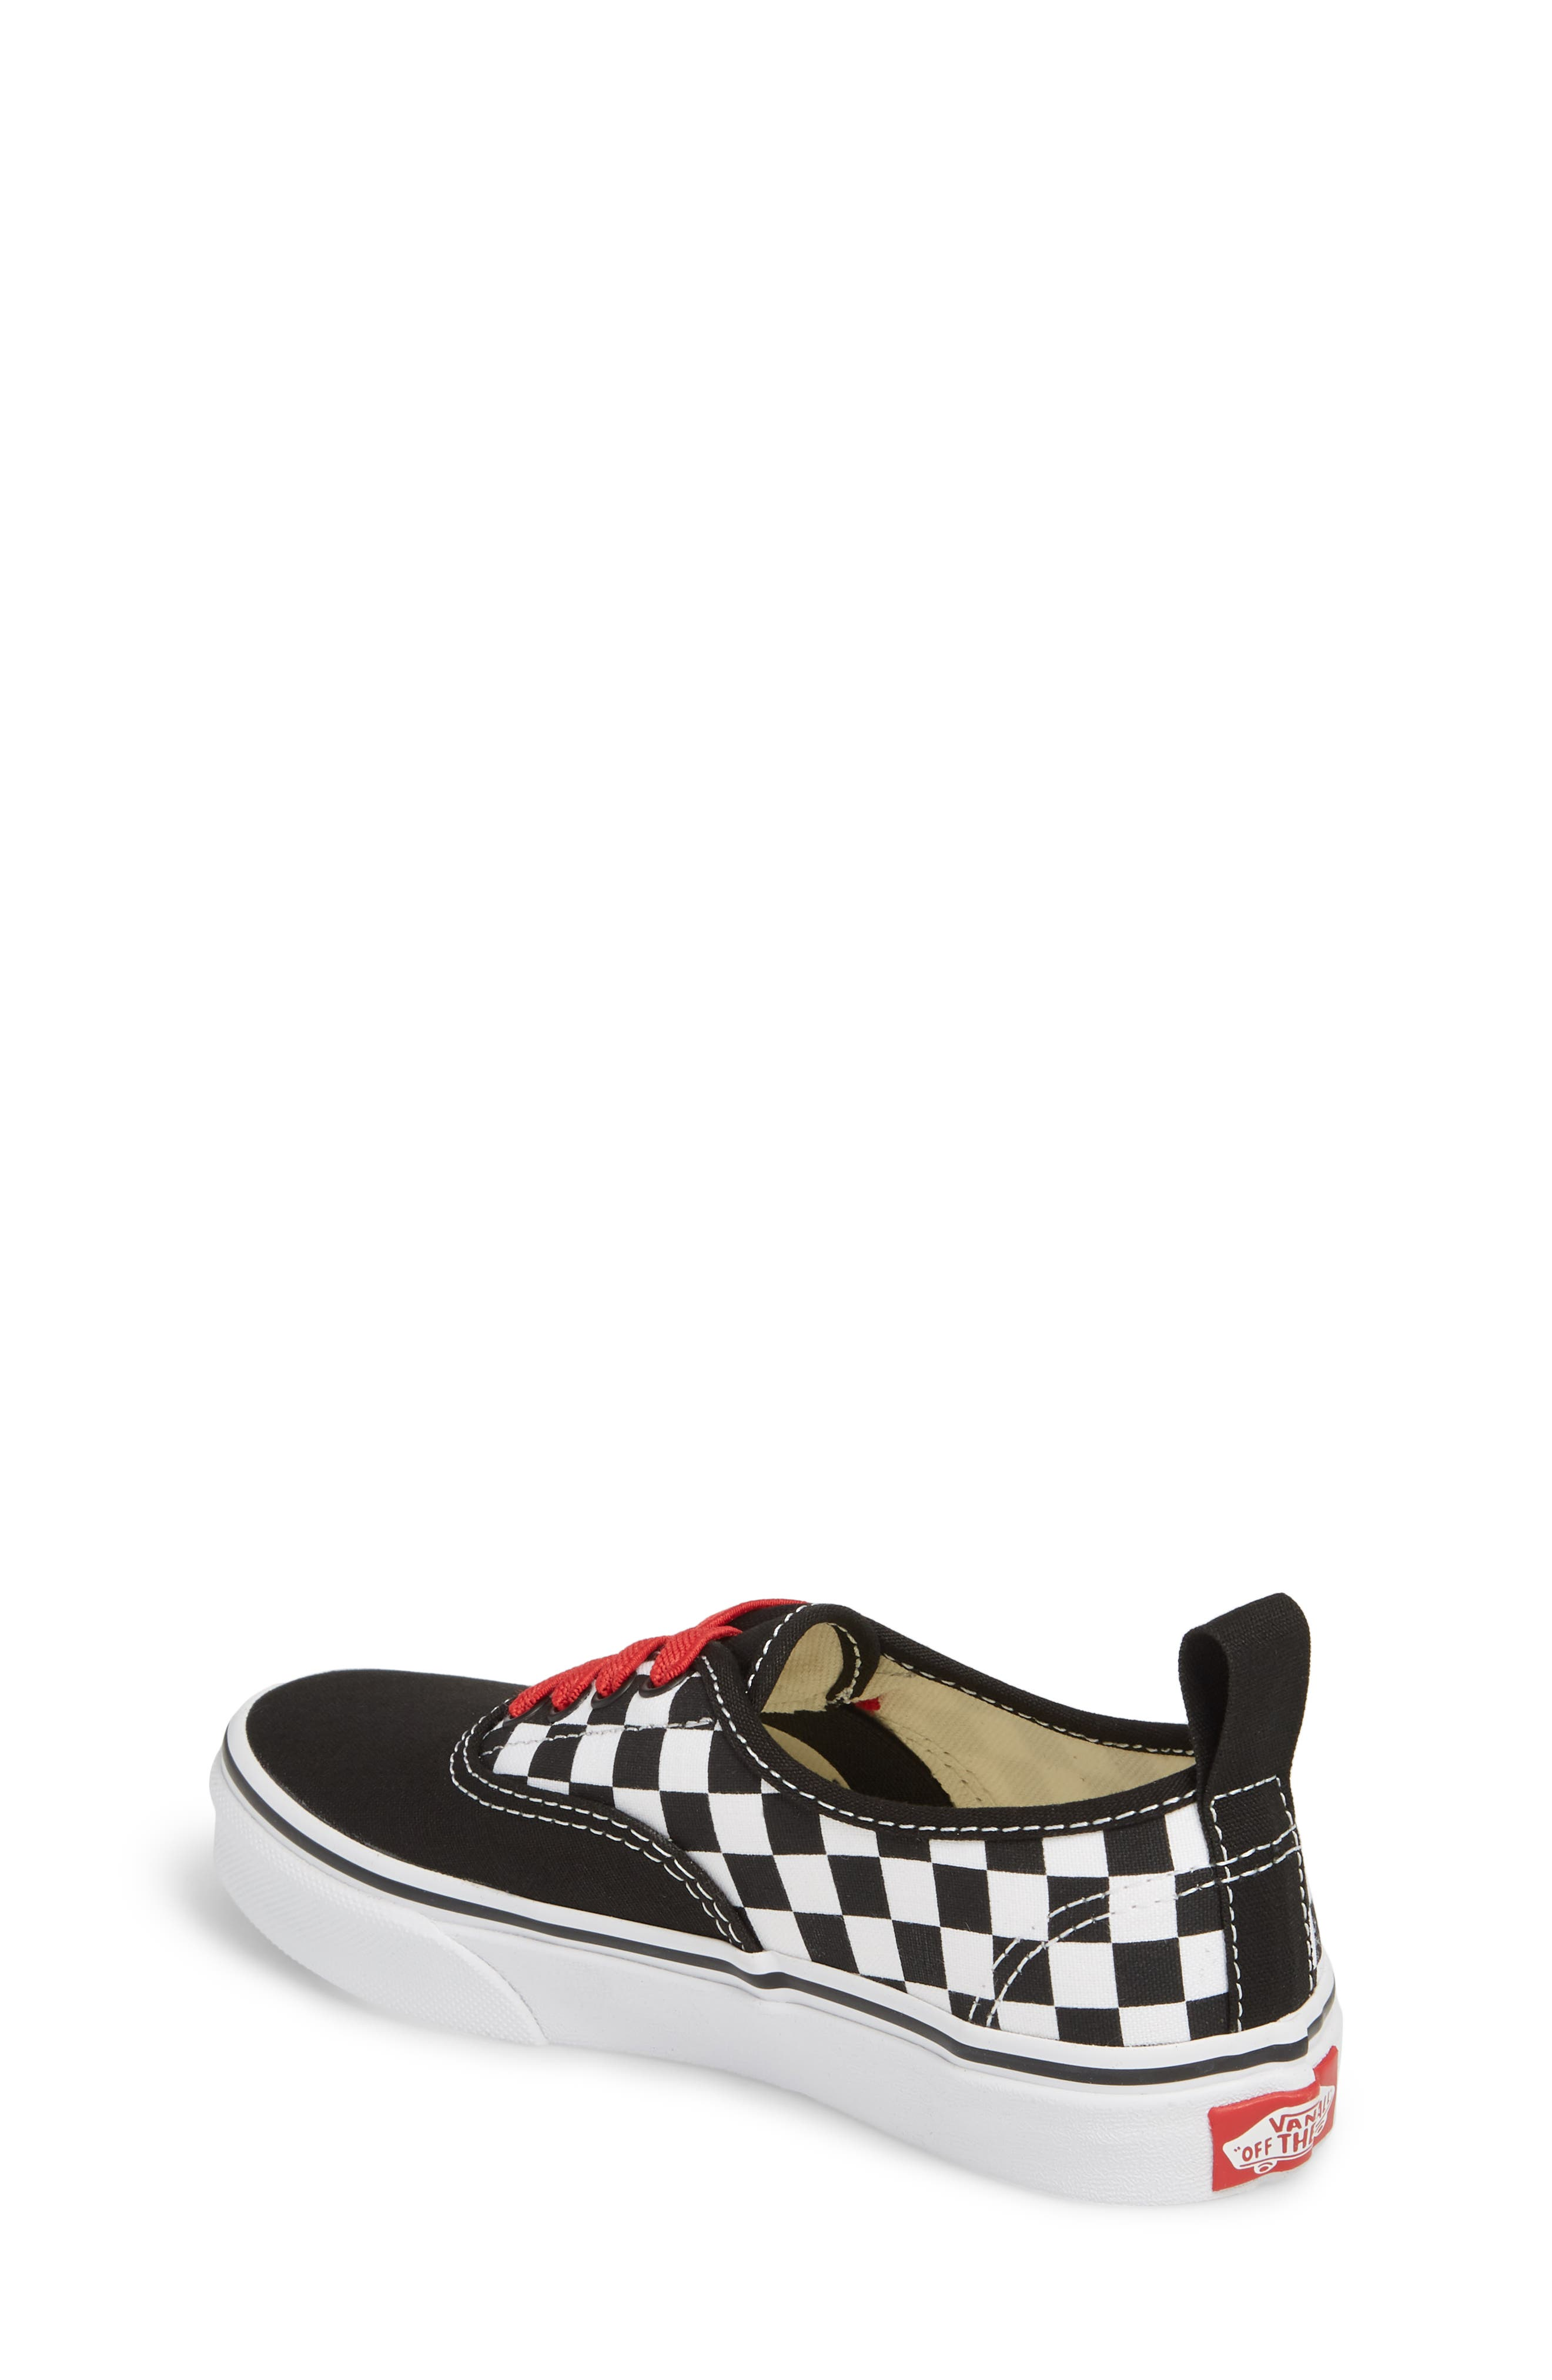 Authentic Elastic Lace Sneaker,                             Alternate thumbnail 2, color,                             CHECKERBOARD BLACK/ RED/ WHITE